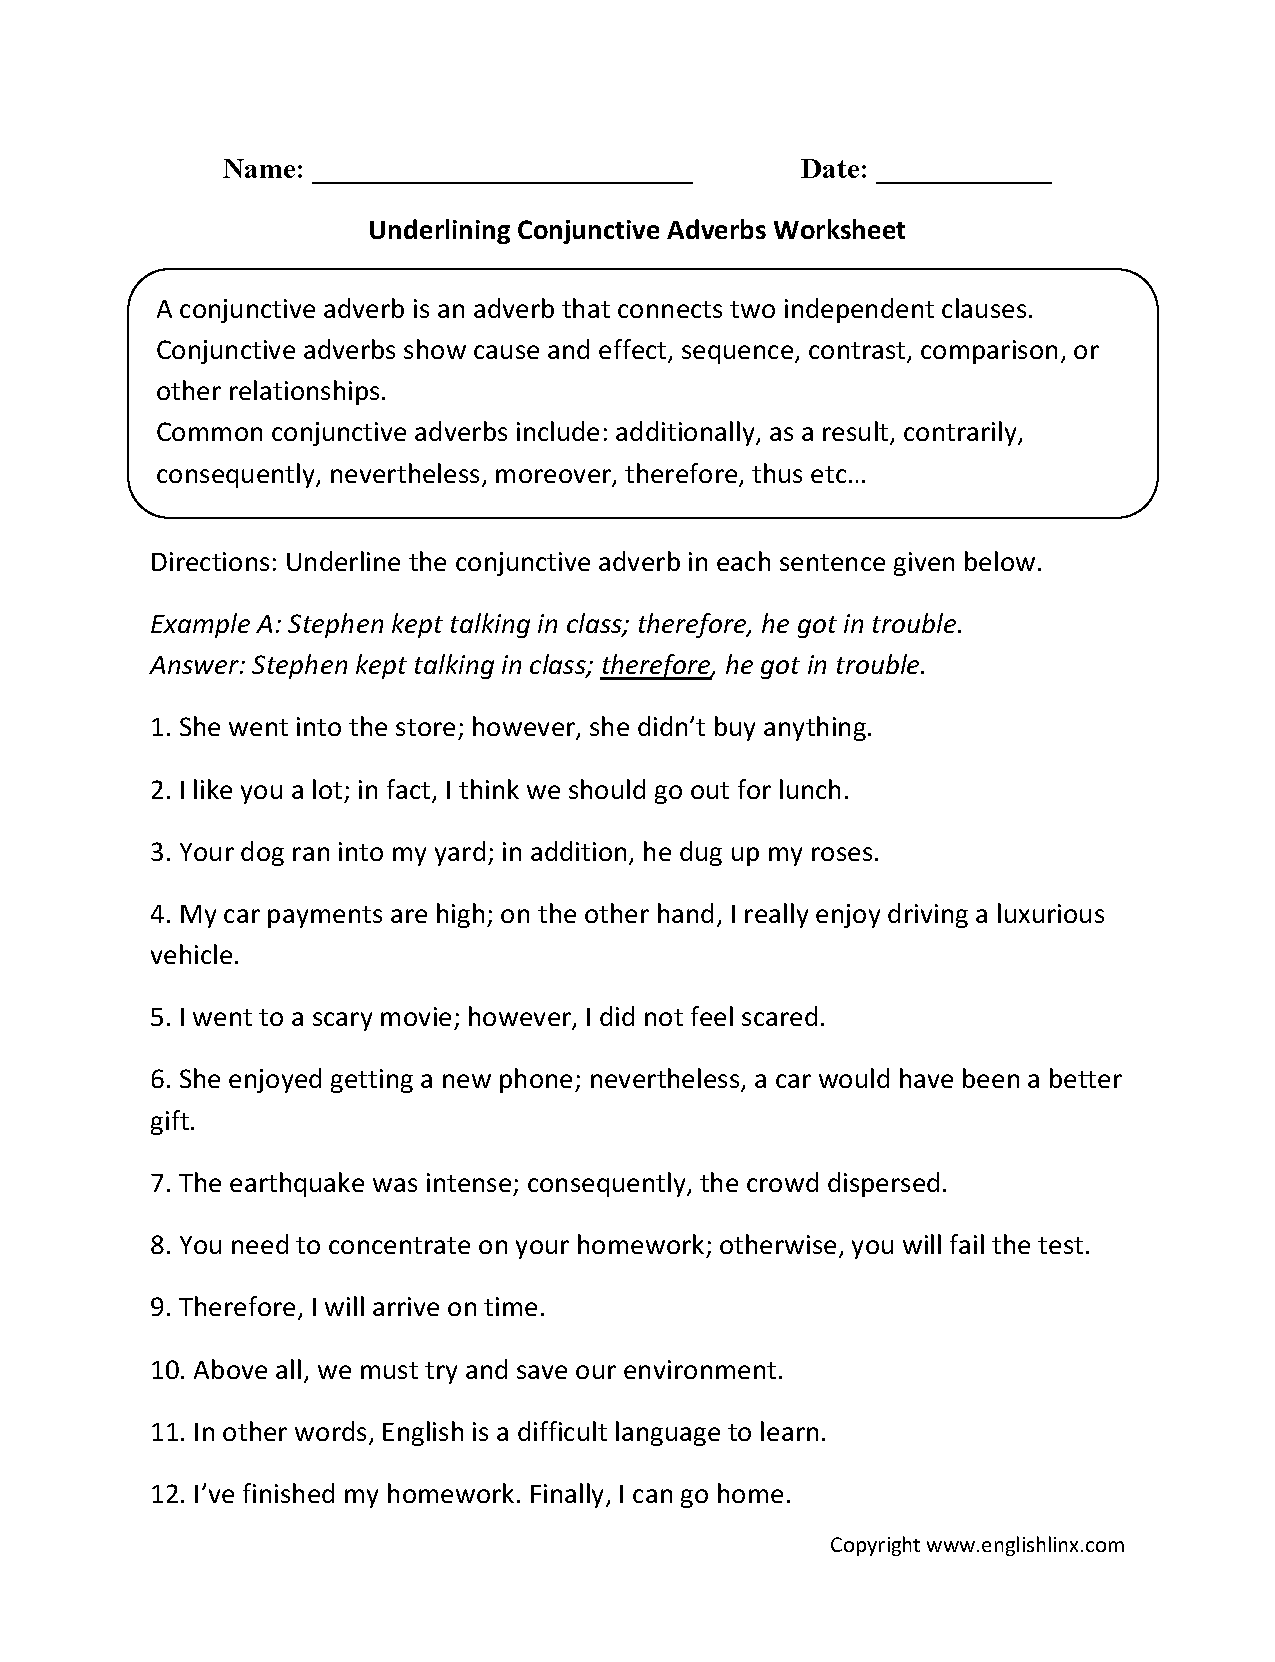 Weirdmailus  Marvellous Englishlinxcom  Conjunctions Worksheets With Interesting Worksheet With Endearing Worksheets On Shapes For Grade  Also Numbers To Words Worksheet In Addition Ks Worksheets Printable And Homework Kindergarten Worksheets As Well As Contraction Worksheets Grade  Additionally Communicable Diseases Worksheet From Englishlinxcom With Weirdmailus  Interesting Englishlinxcom  Conjunctions Worksheets With Endearing Worksheet And Marvellous Worksheets On Shapes For Grade  Also Numbers To Words Worksheet In Addition Ks Worksheets Printable From Englishlinxcom